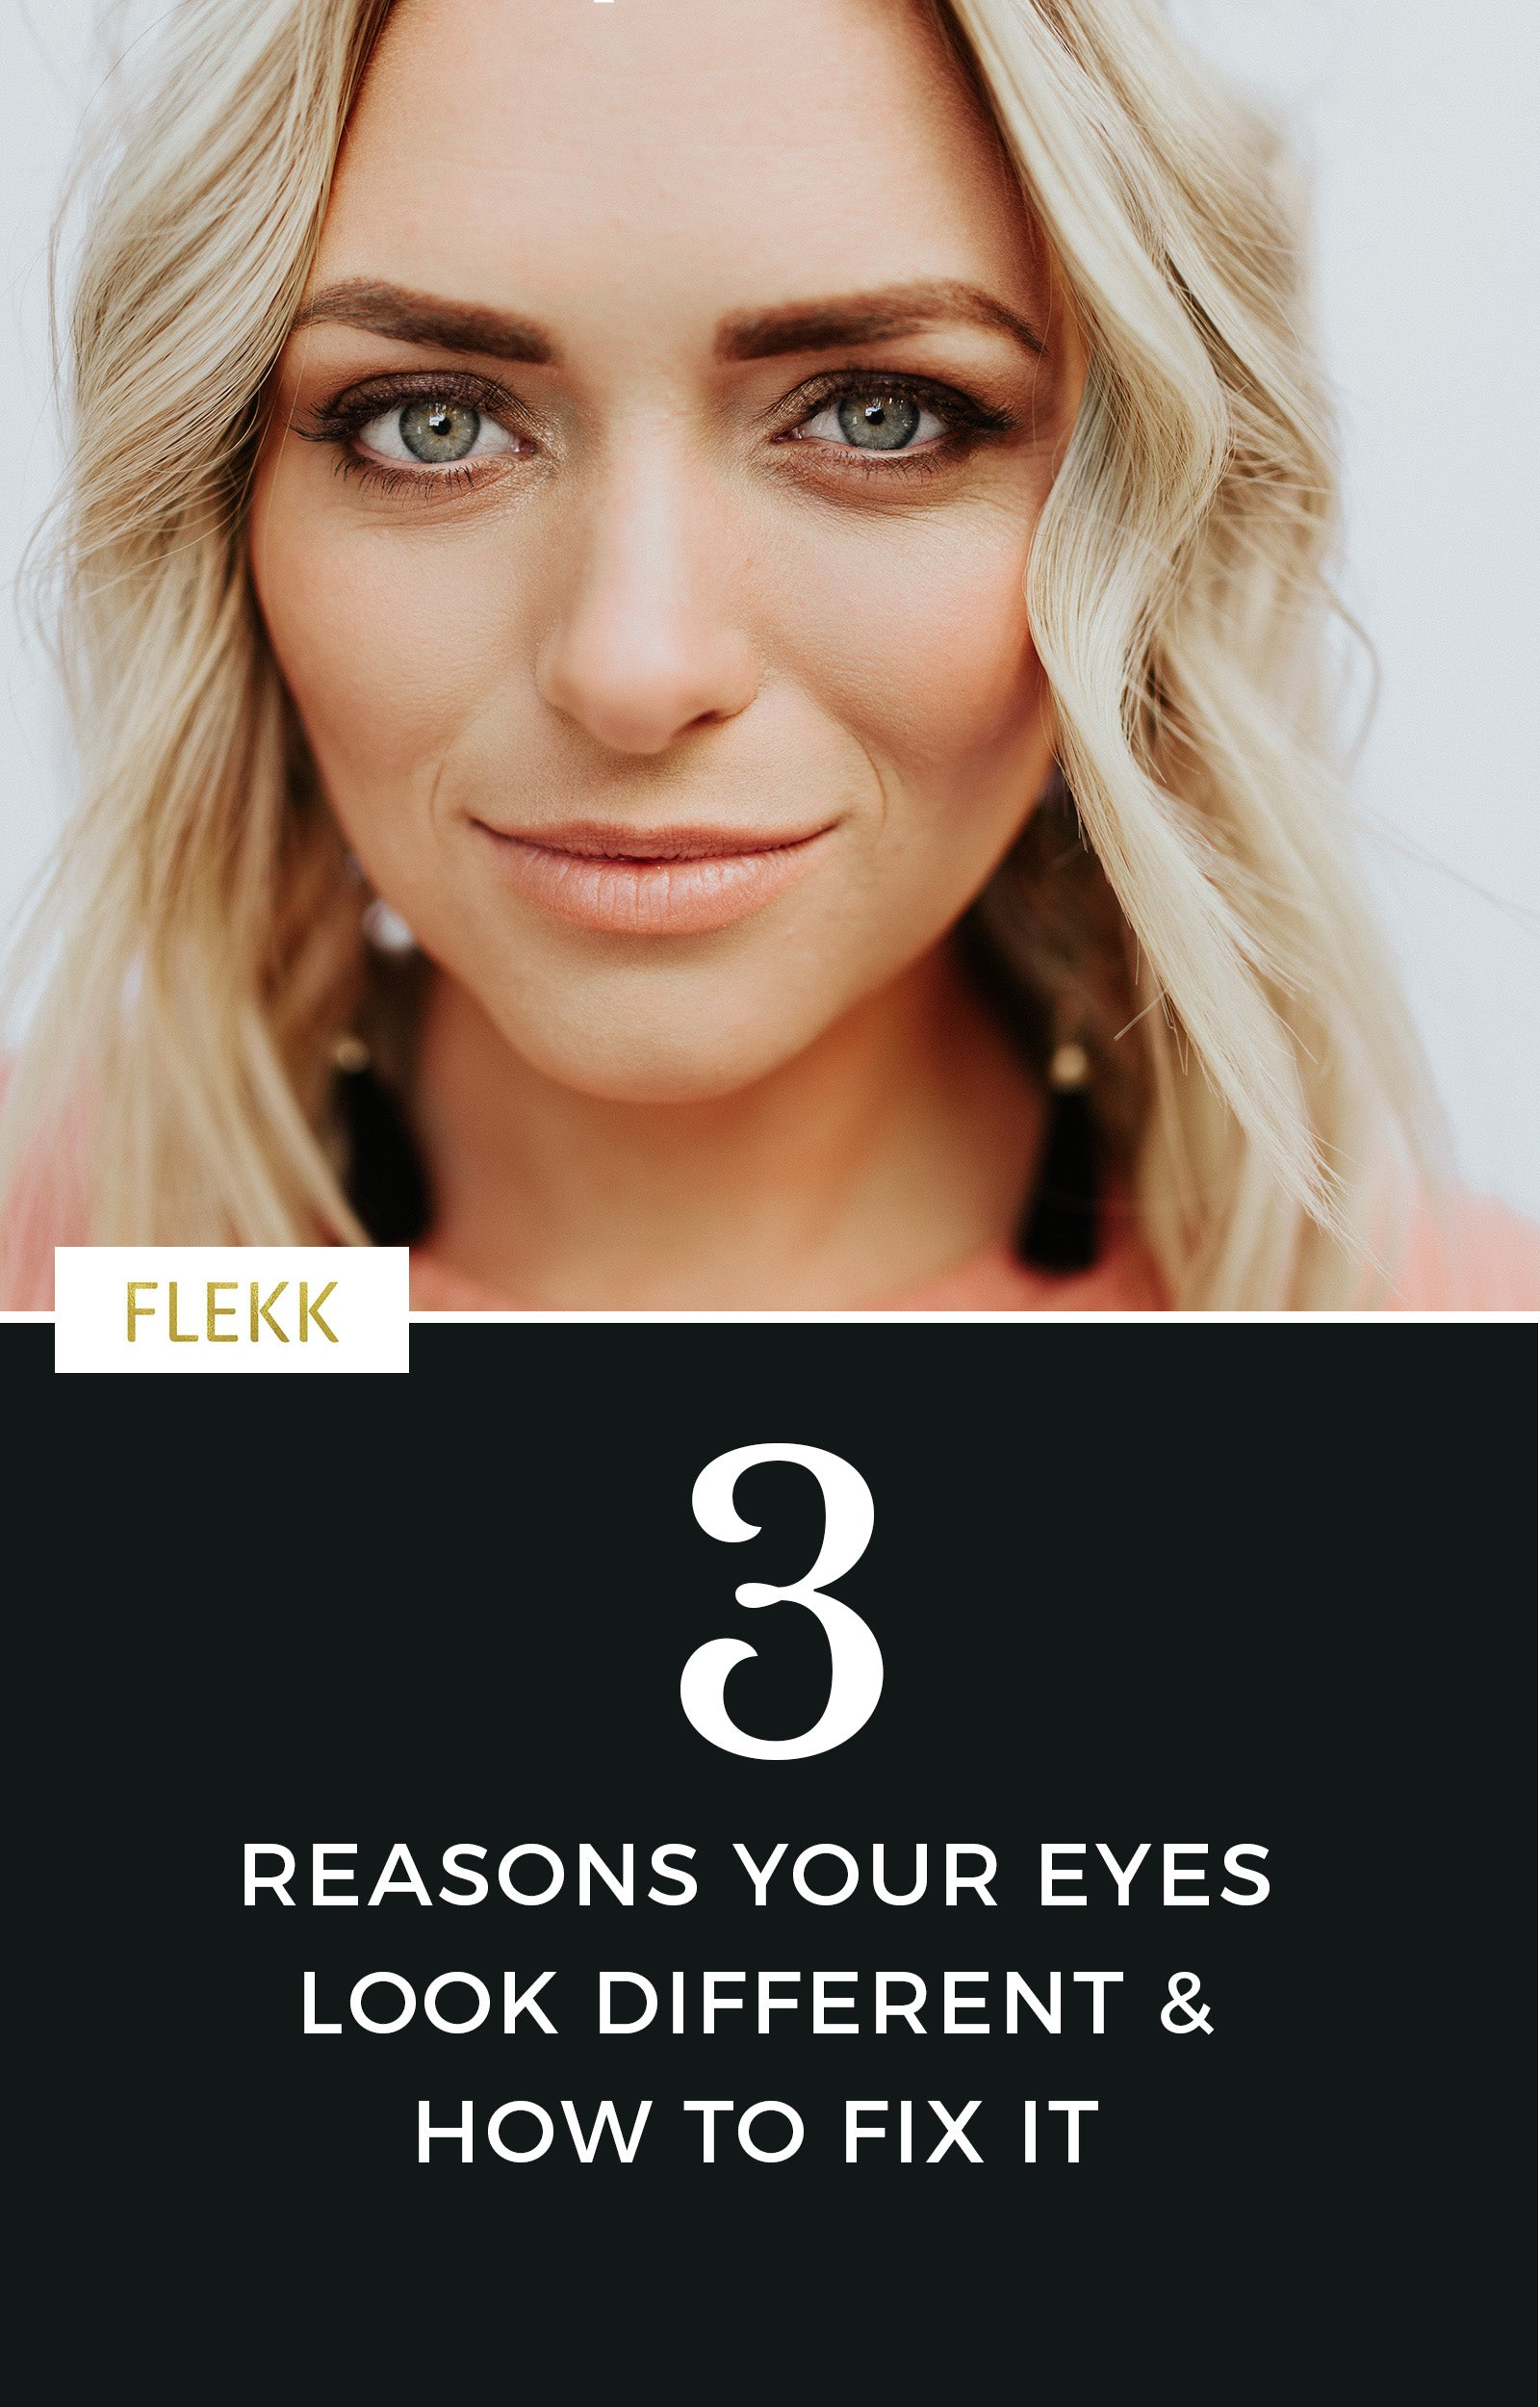 it is common for women to notice fine lines, wrinkles, sagging eyes, etc. Some will even say that one eye looks different than the other. Read on for why this happens and how you can easily restore balance to your eye makeup. #flekkcosmetics #eyemakeuptips #makeuphelp #eyeshadow #agingeyes